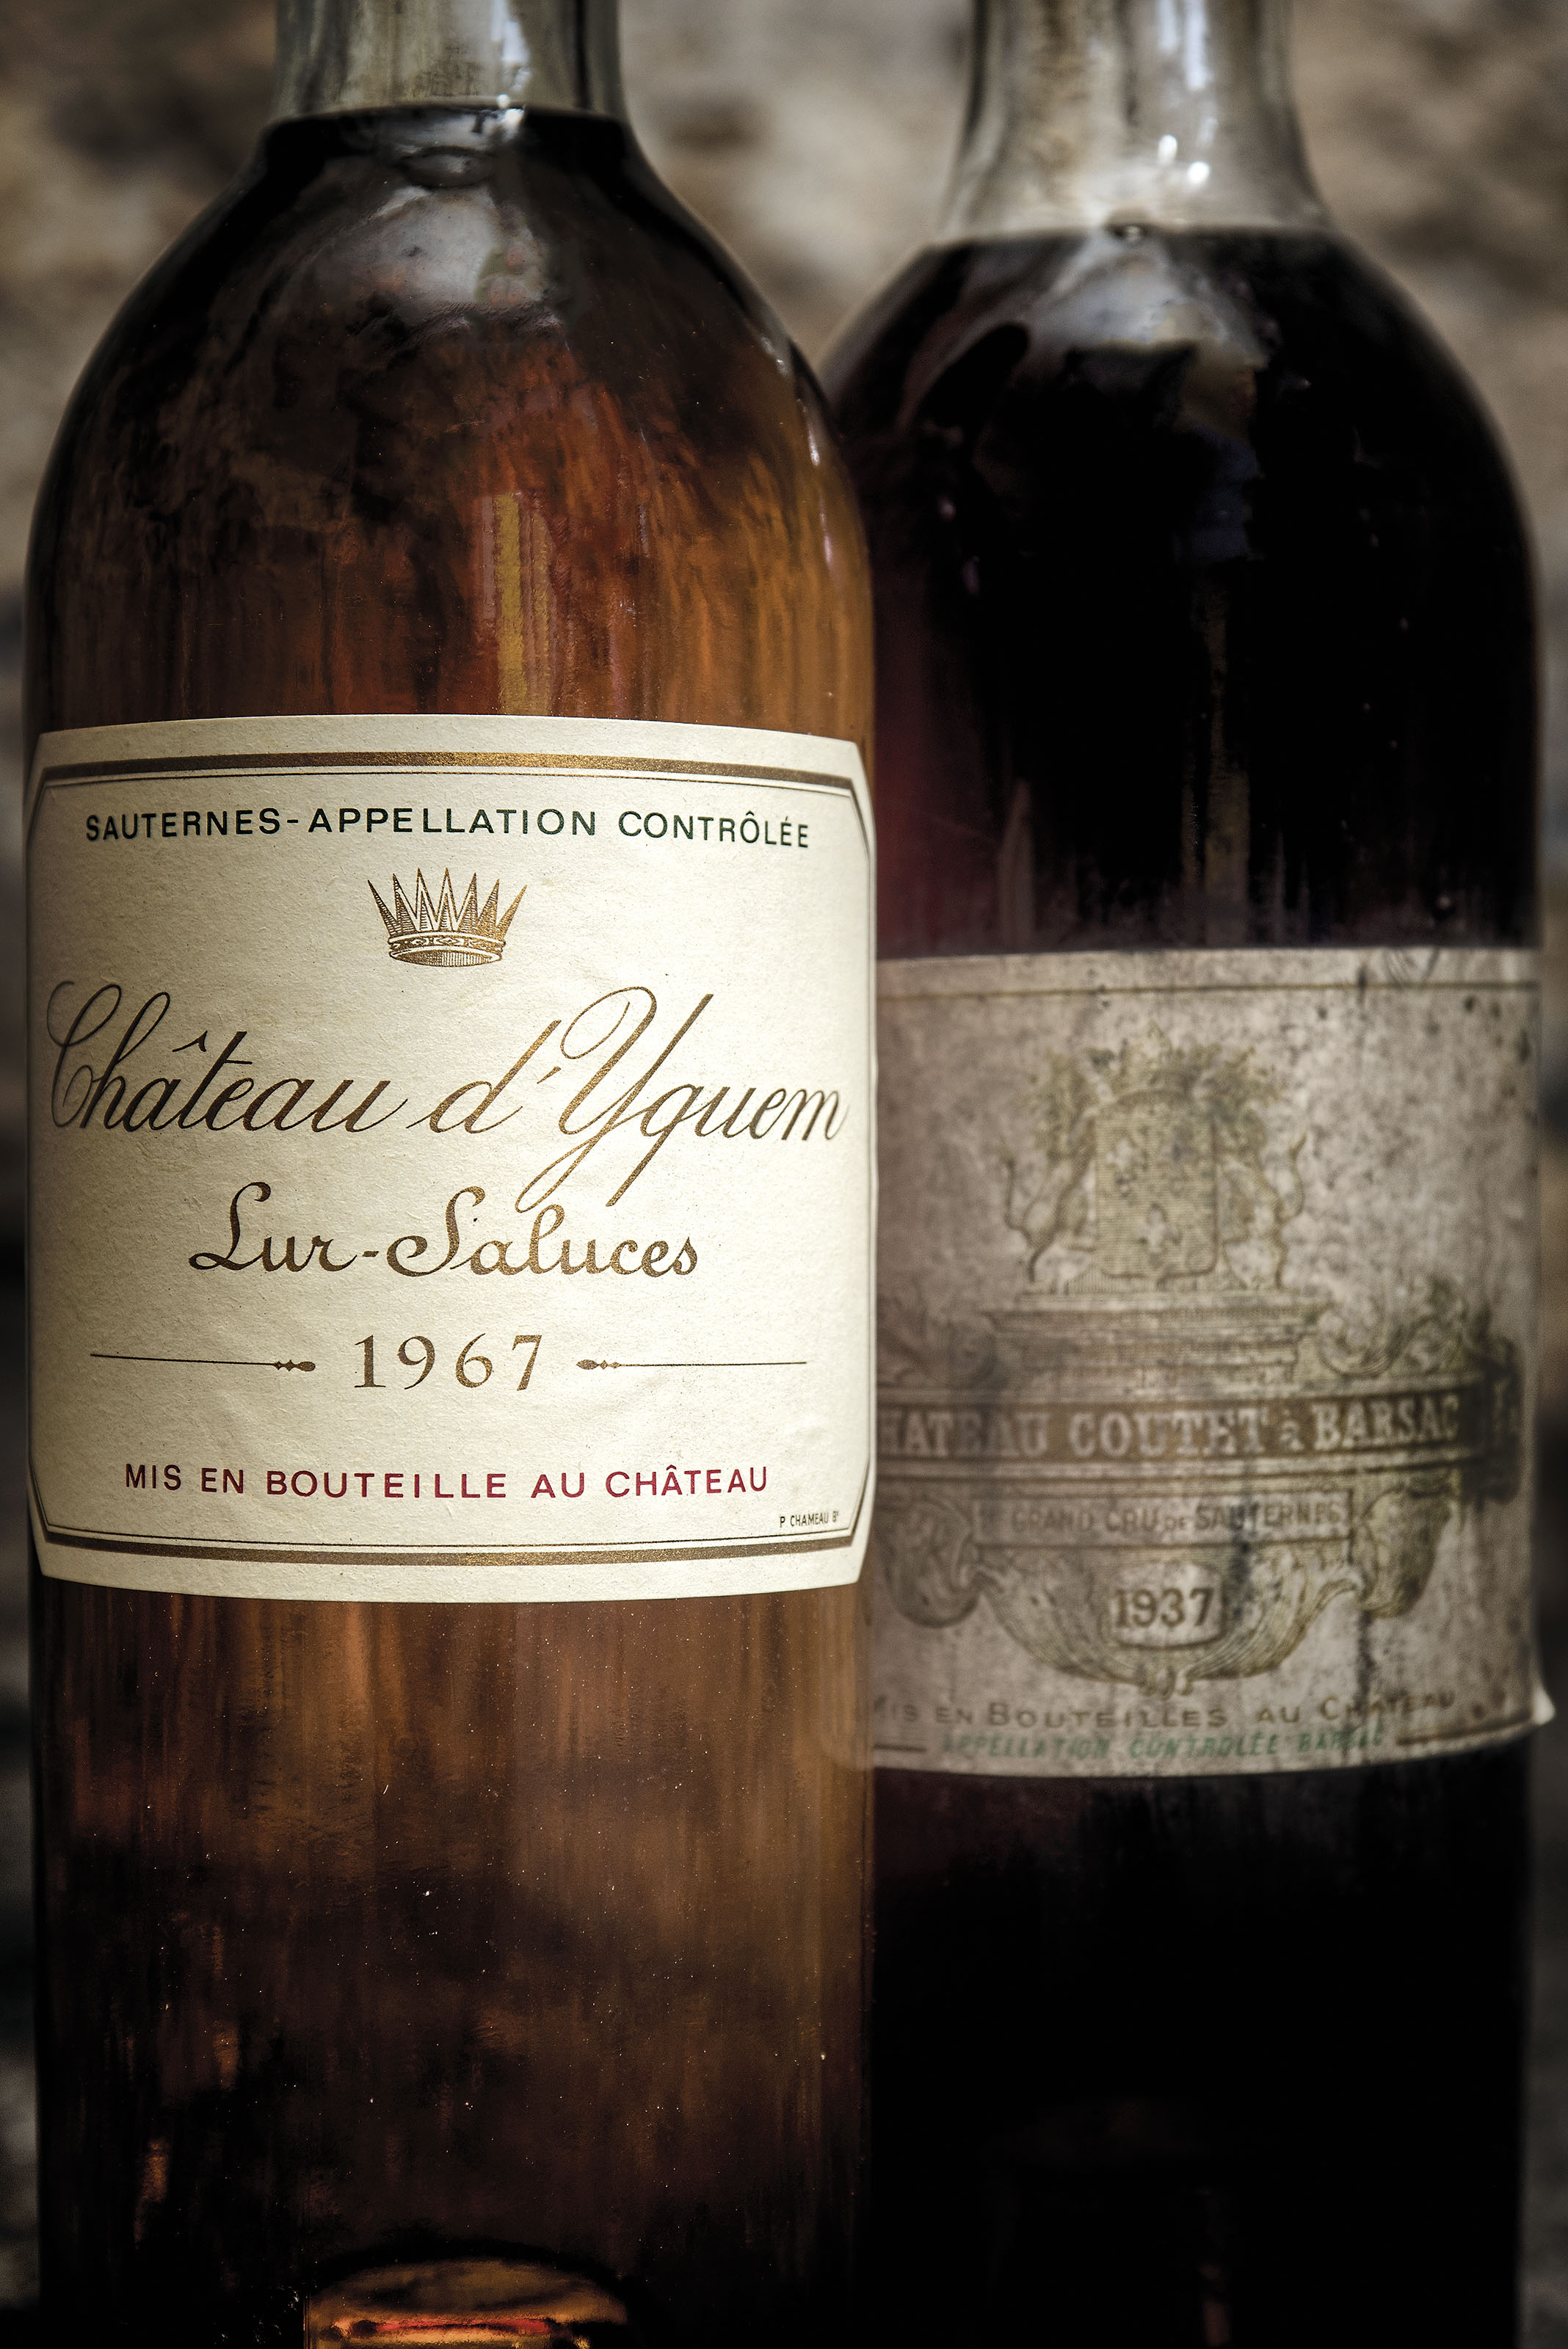 Château Coutet 1937 One remains of capsule, one corroded. Badly bin-soiled label. One vintage hand-written on label. Levels: one top-shoulder, one low-shoulder.  (2) Château Olivier Blanc 1943 French-bottled. Corroded capsules, one with signs of seepage.. Bin-soiled, slightly damaged labels. Levels: six top-shoulder and one low-shoulder with dark colour  (7) Château d'Yquem 1967 Original tissue. Corroded capsule. Good appearance. Level: base of neck  (1)